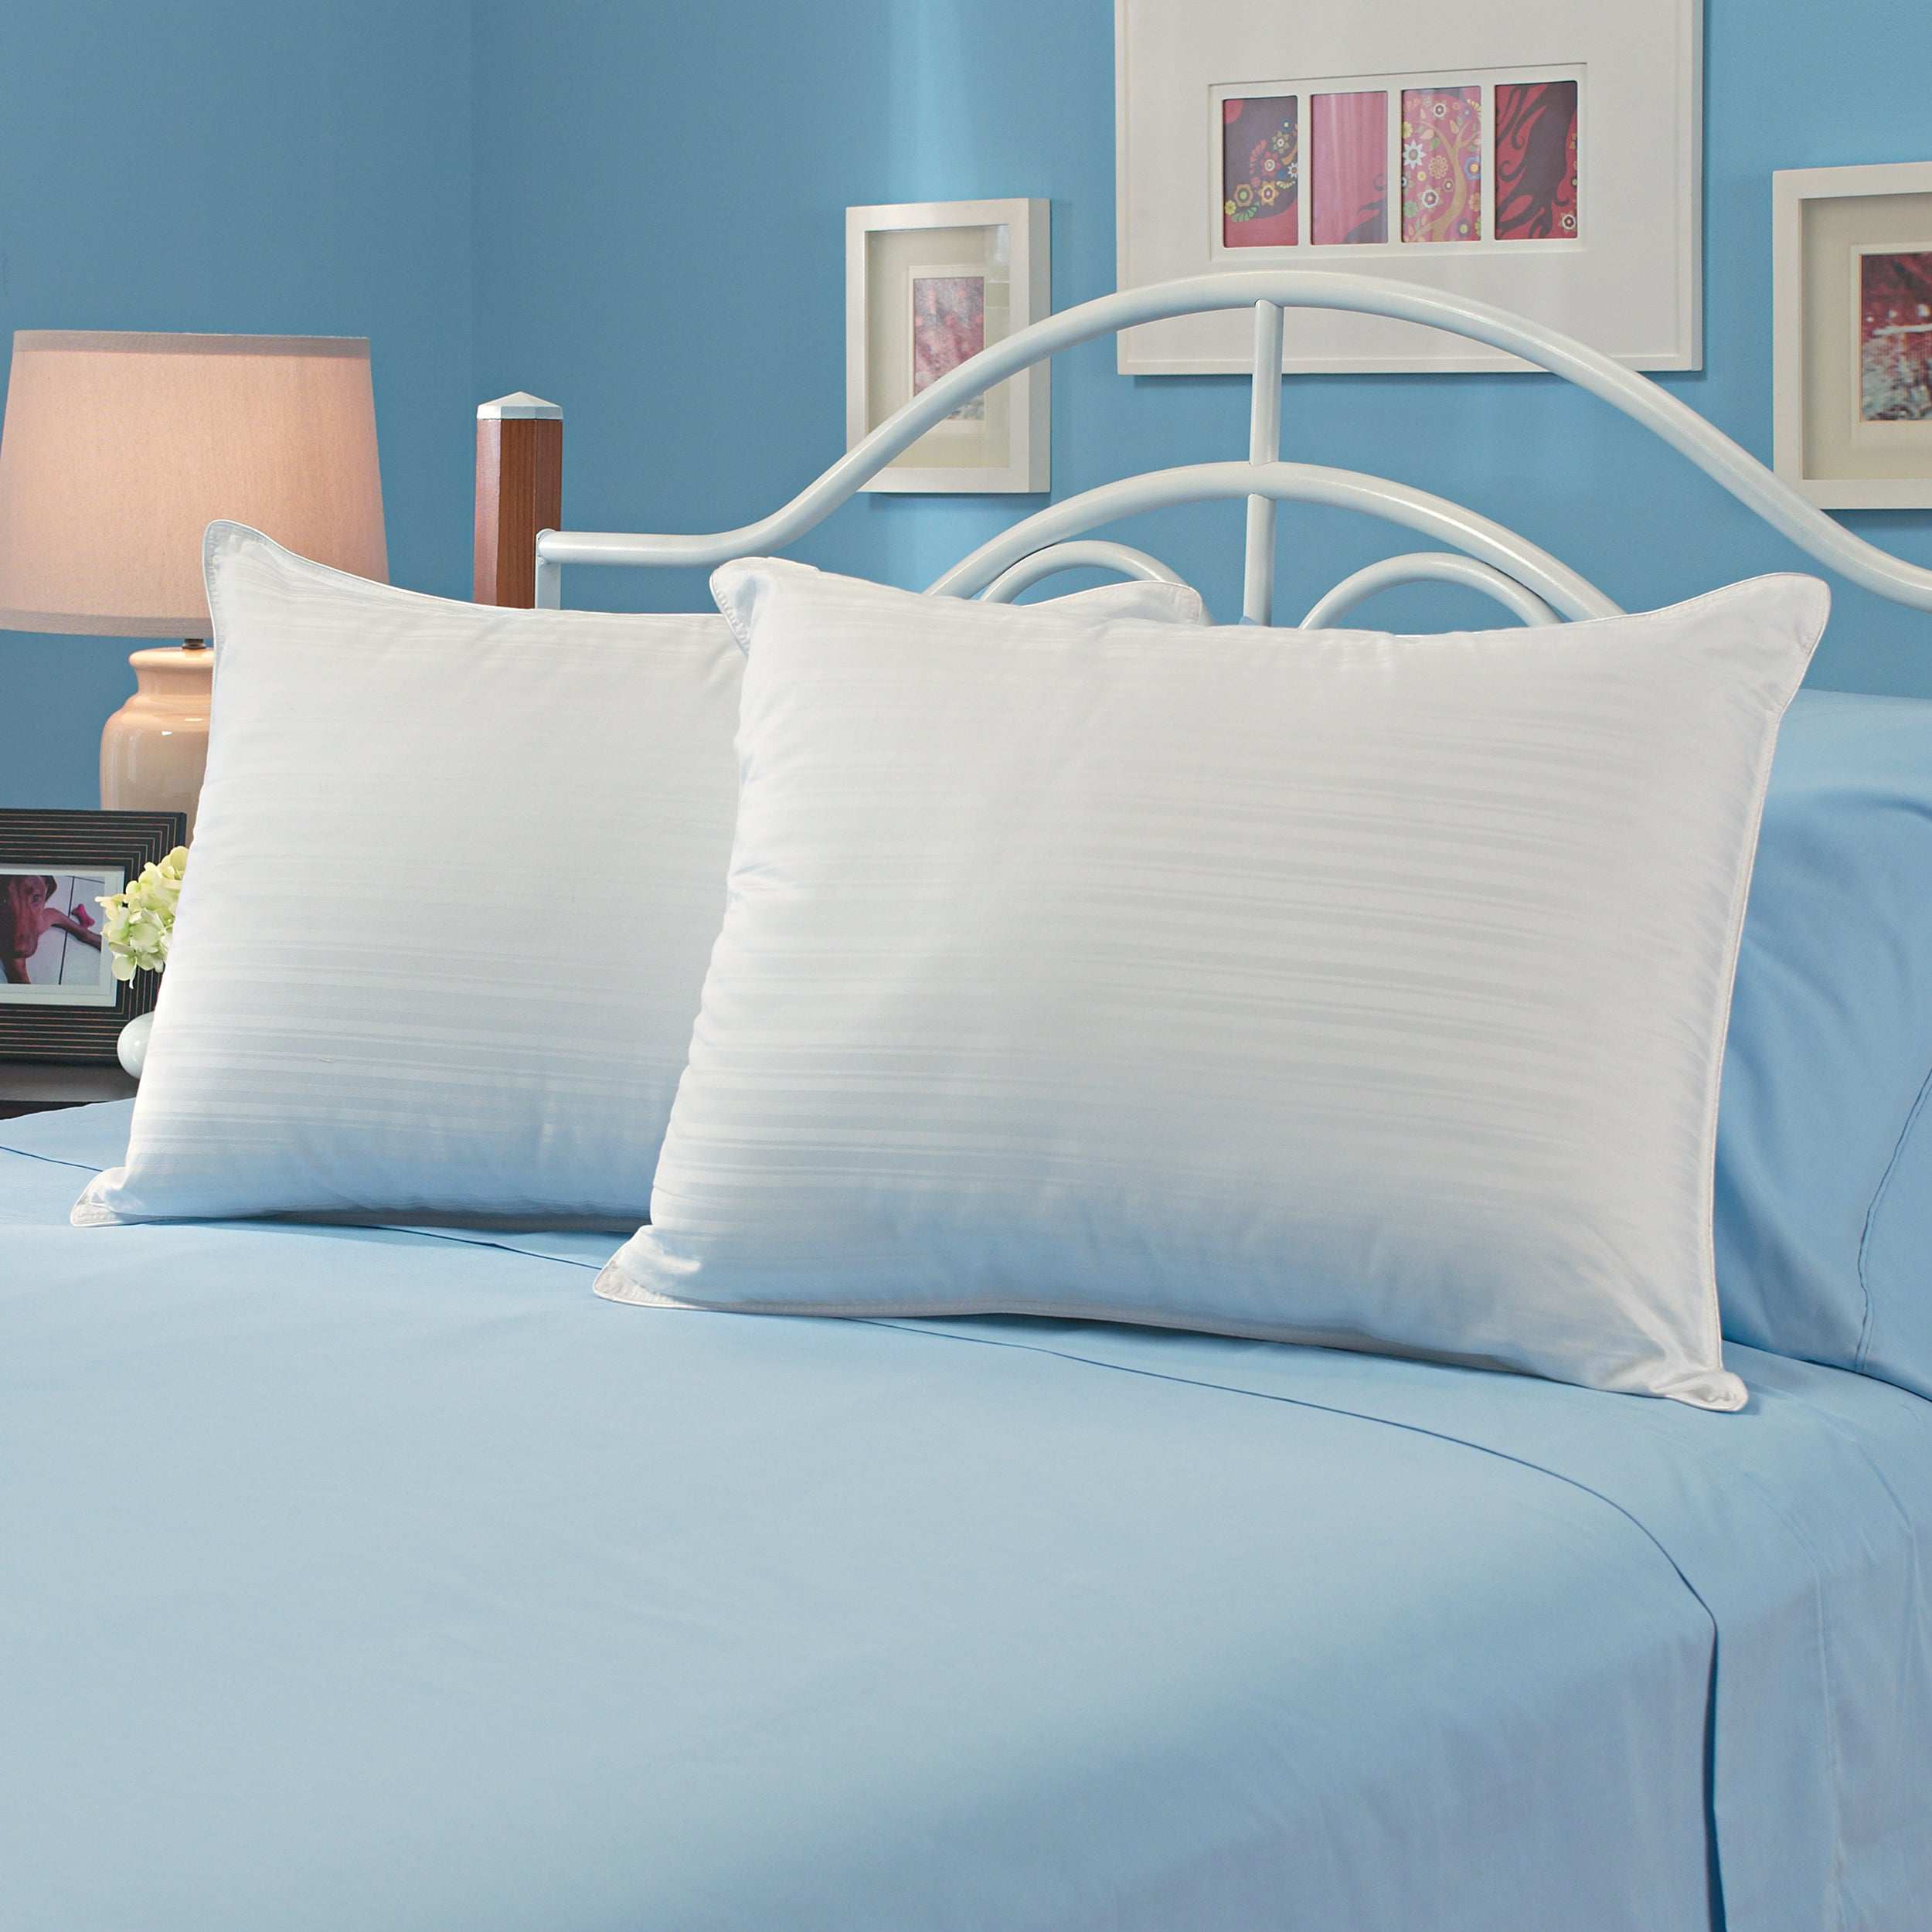 Famous Maker 600 Thread Count Egyptian Cotton Pillows (Set of 2)